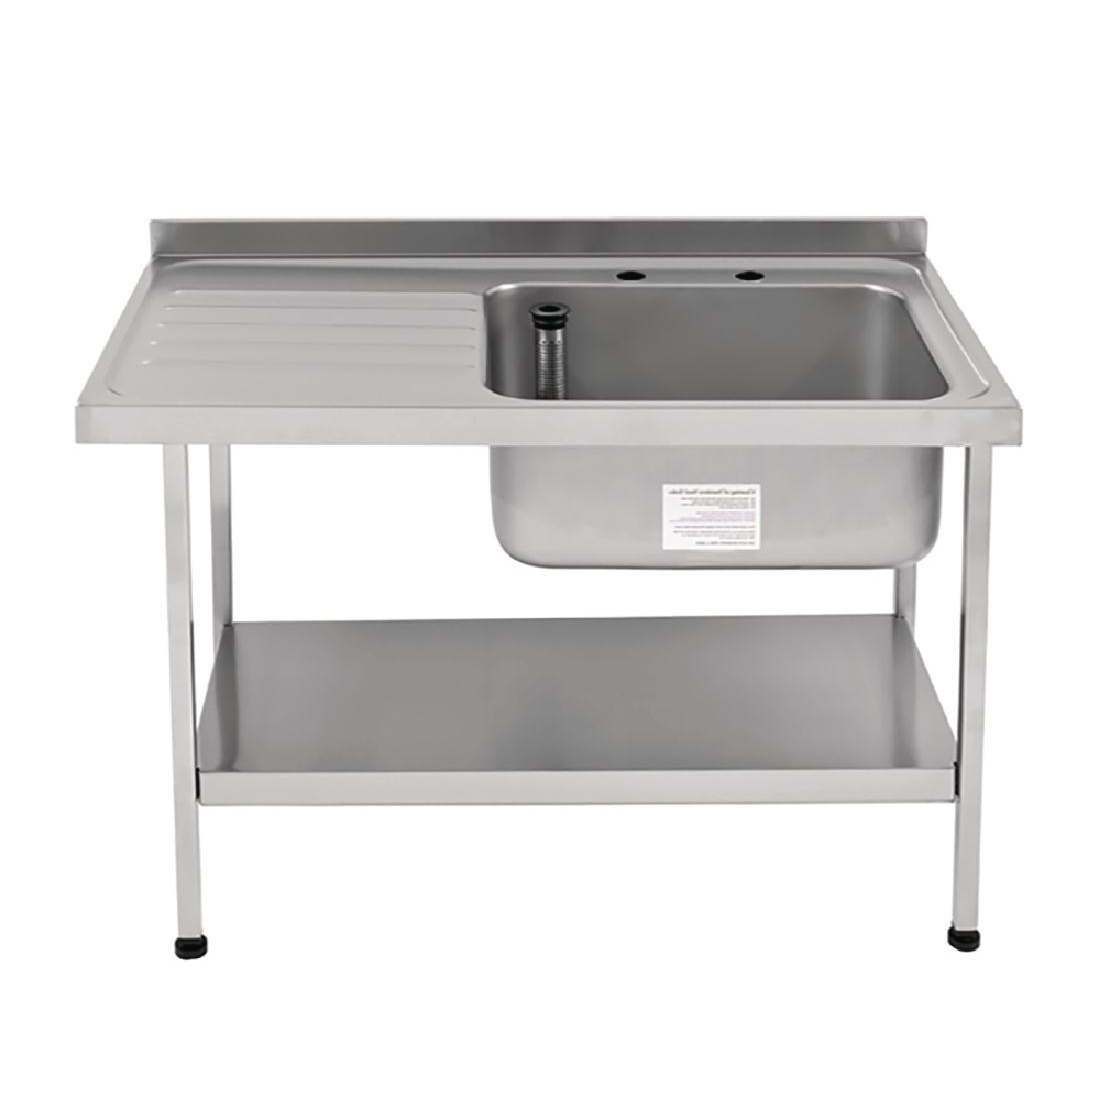 Franke Sissons Self Assembly Stainless Steel Sink Right Hand Bowl 1200x650mm